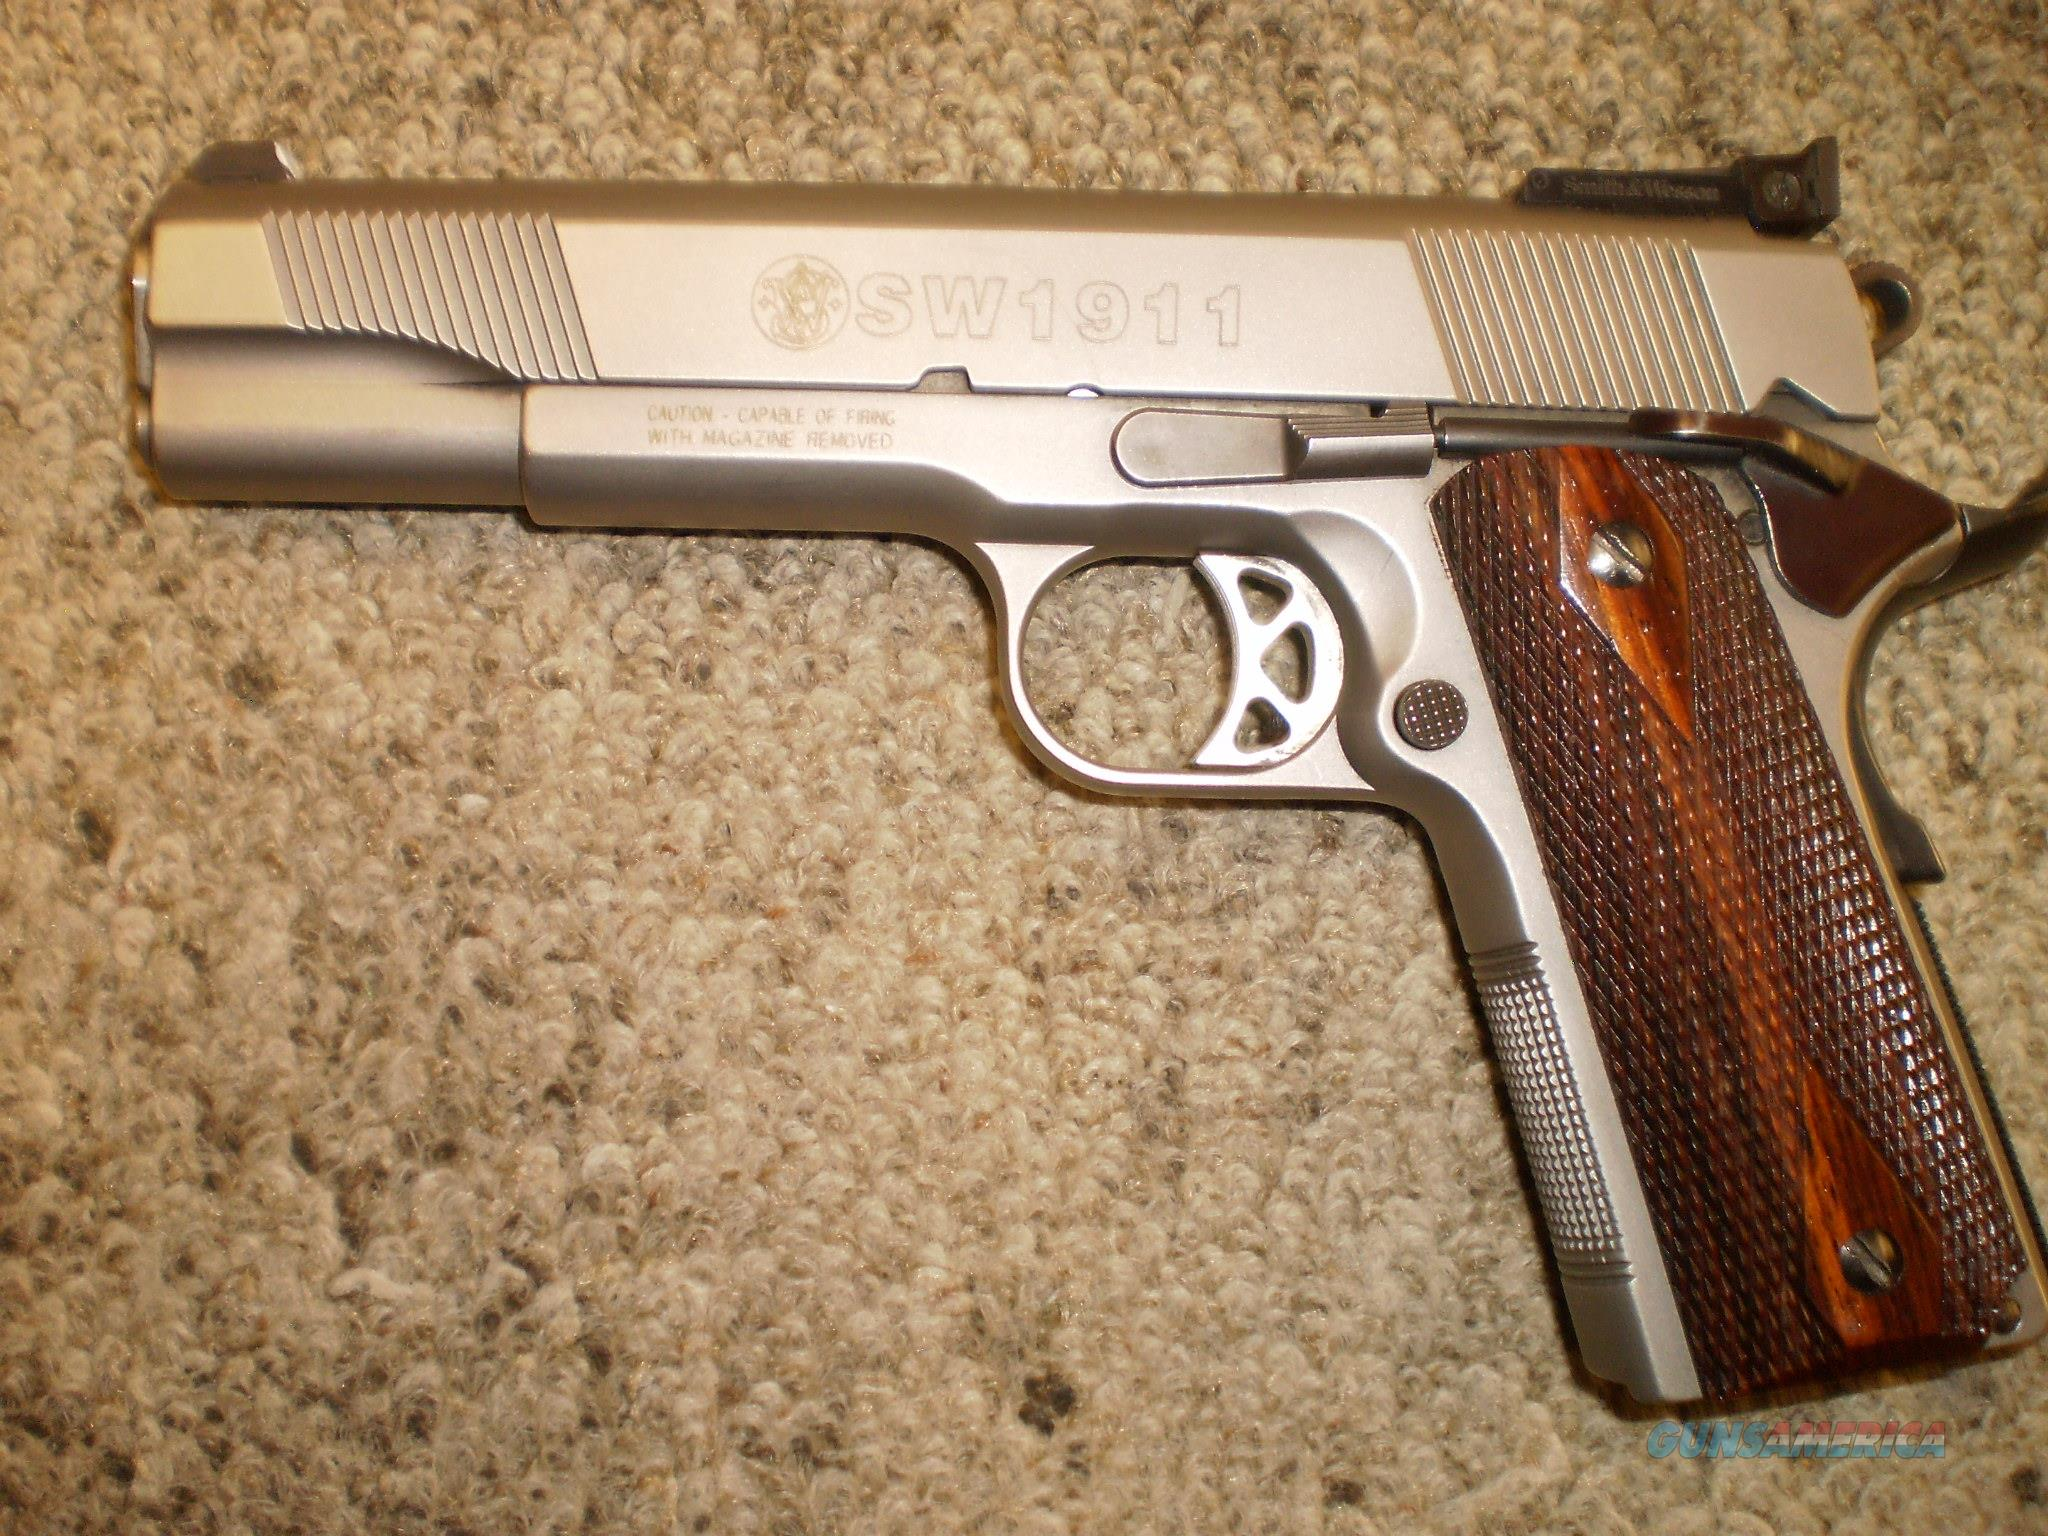 SMITH & WESSON 1911 45 ACP  Guns > Pistols > Smith & Wesson Pistols - Autos > Steel Frame